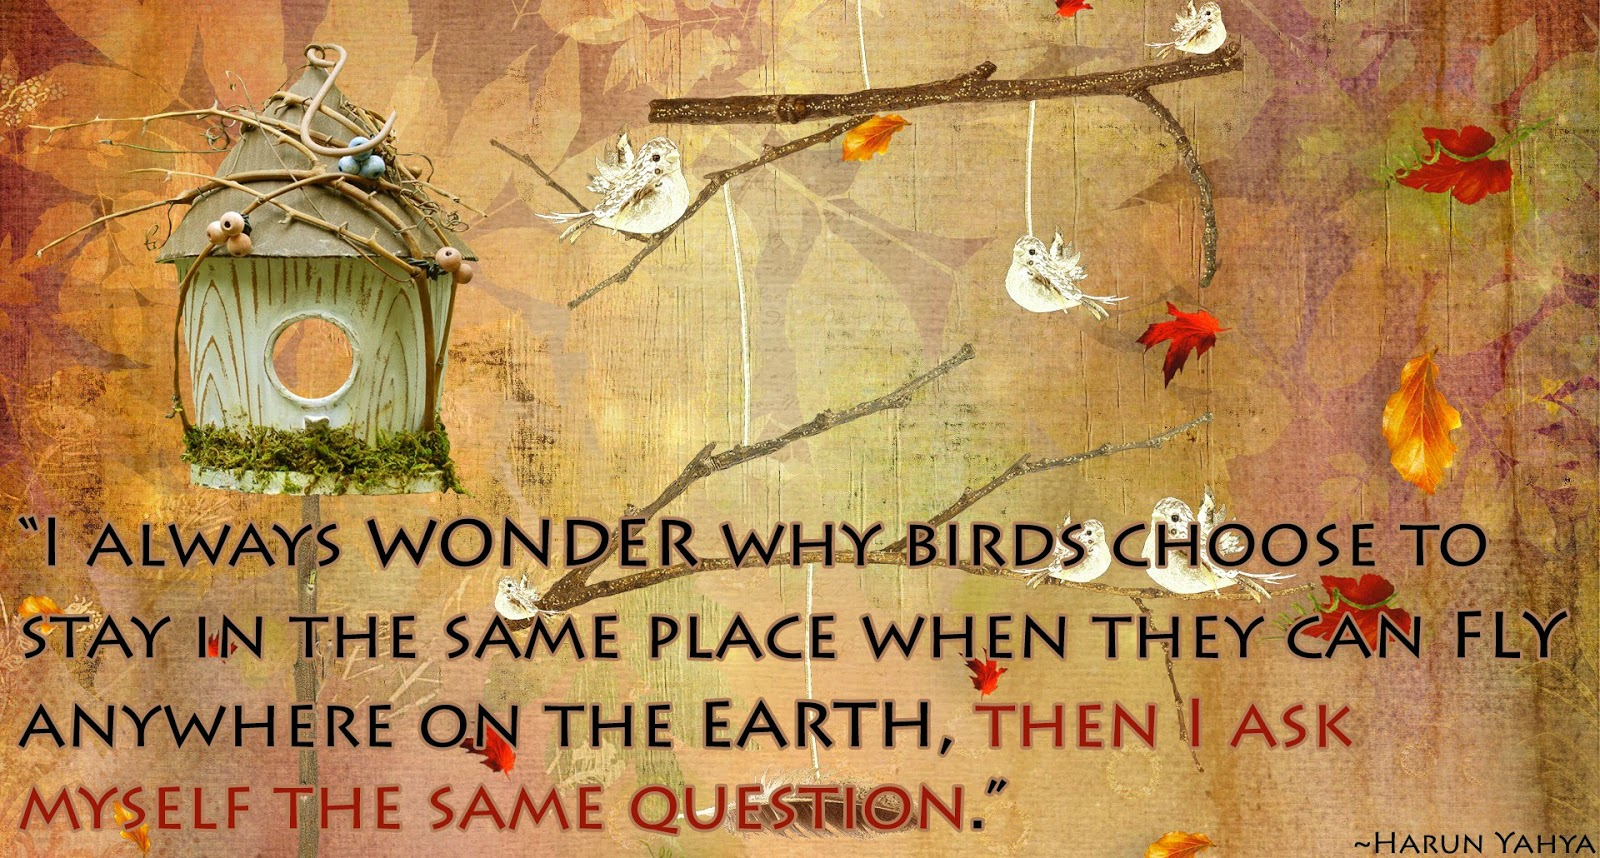 quotes about freedom, quotes about flying, quotes about birds, I always wonder why birds, quotes about travelling